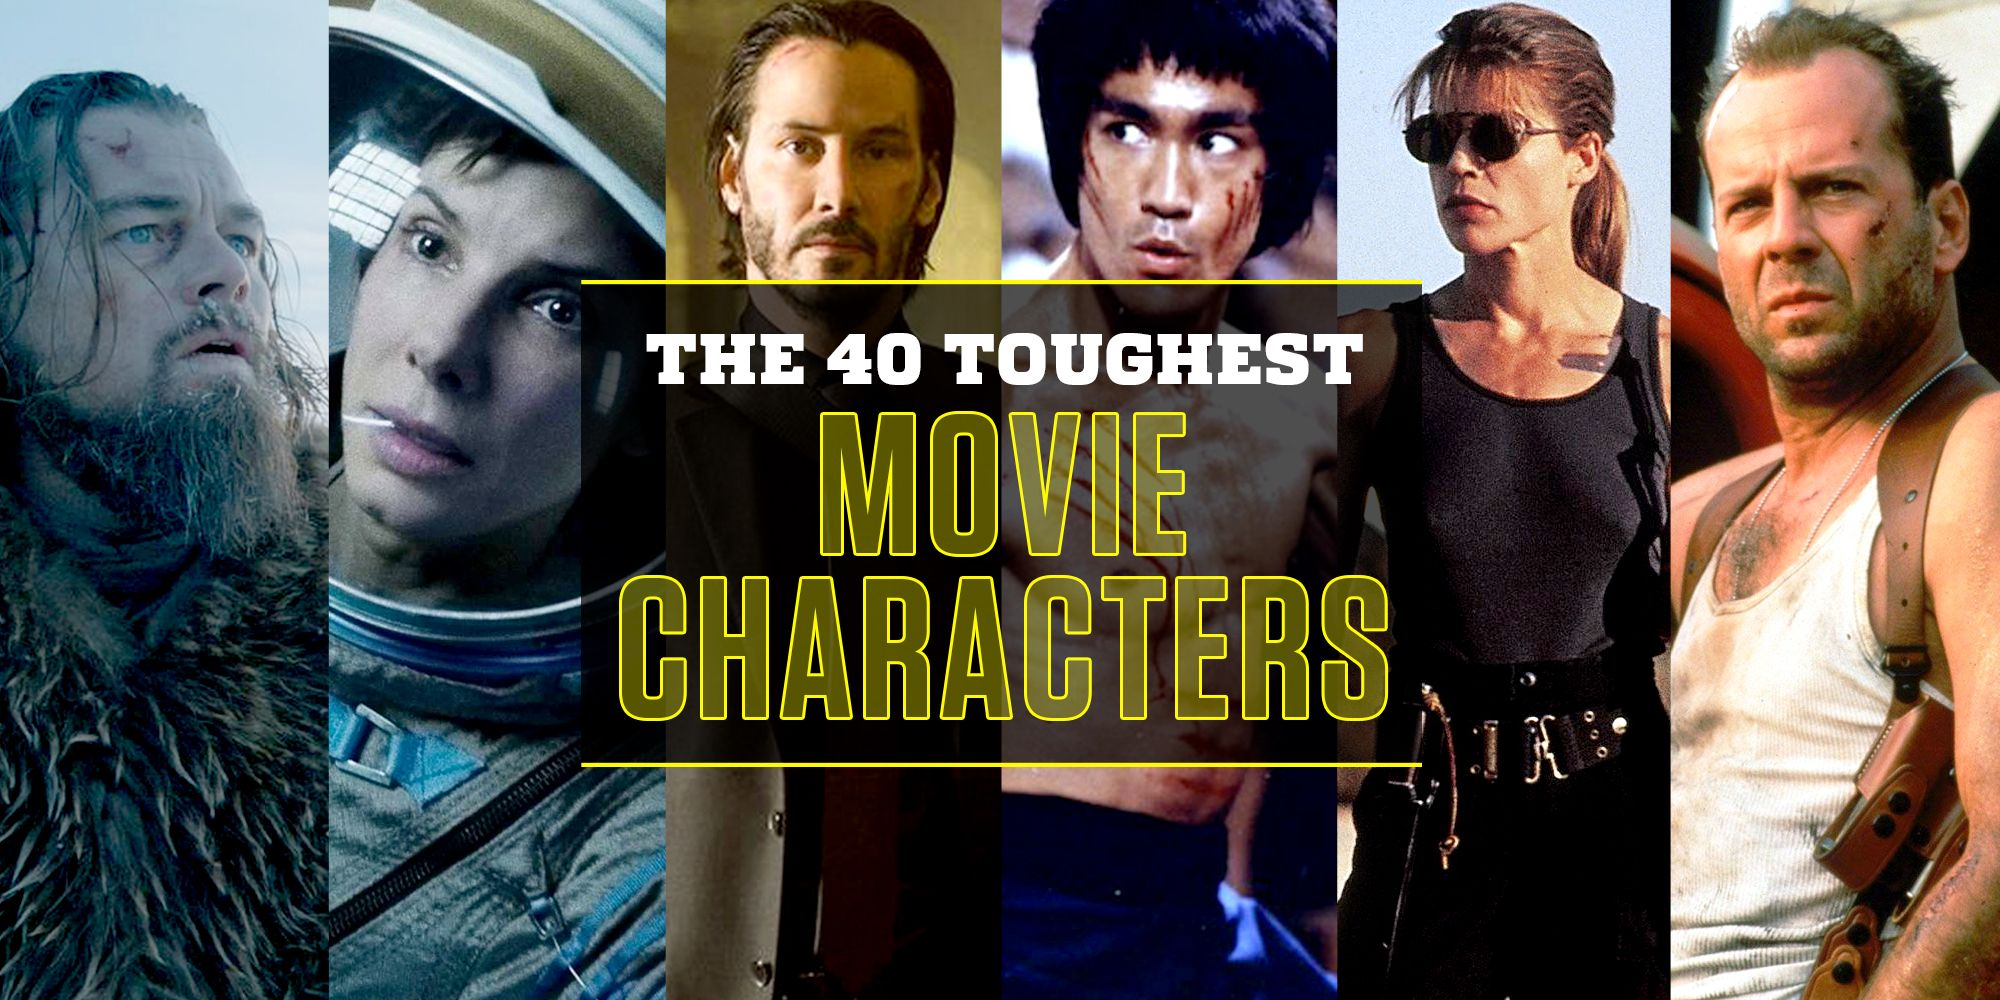 The 40 Toughest Movie Characters